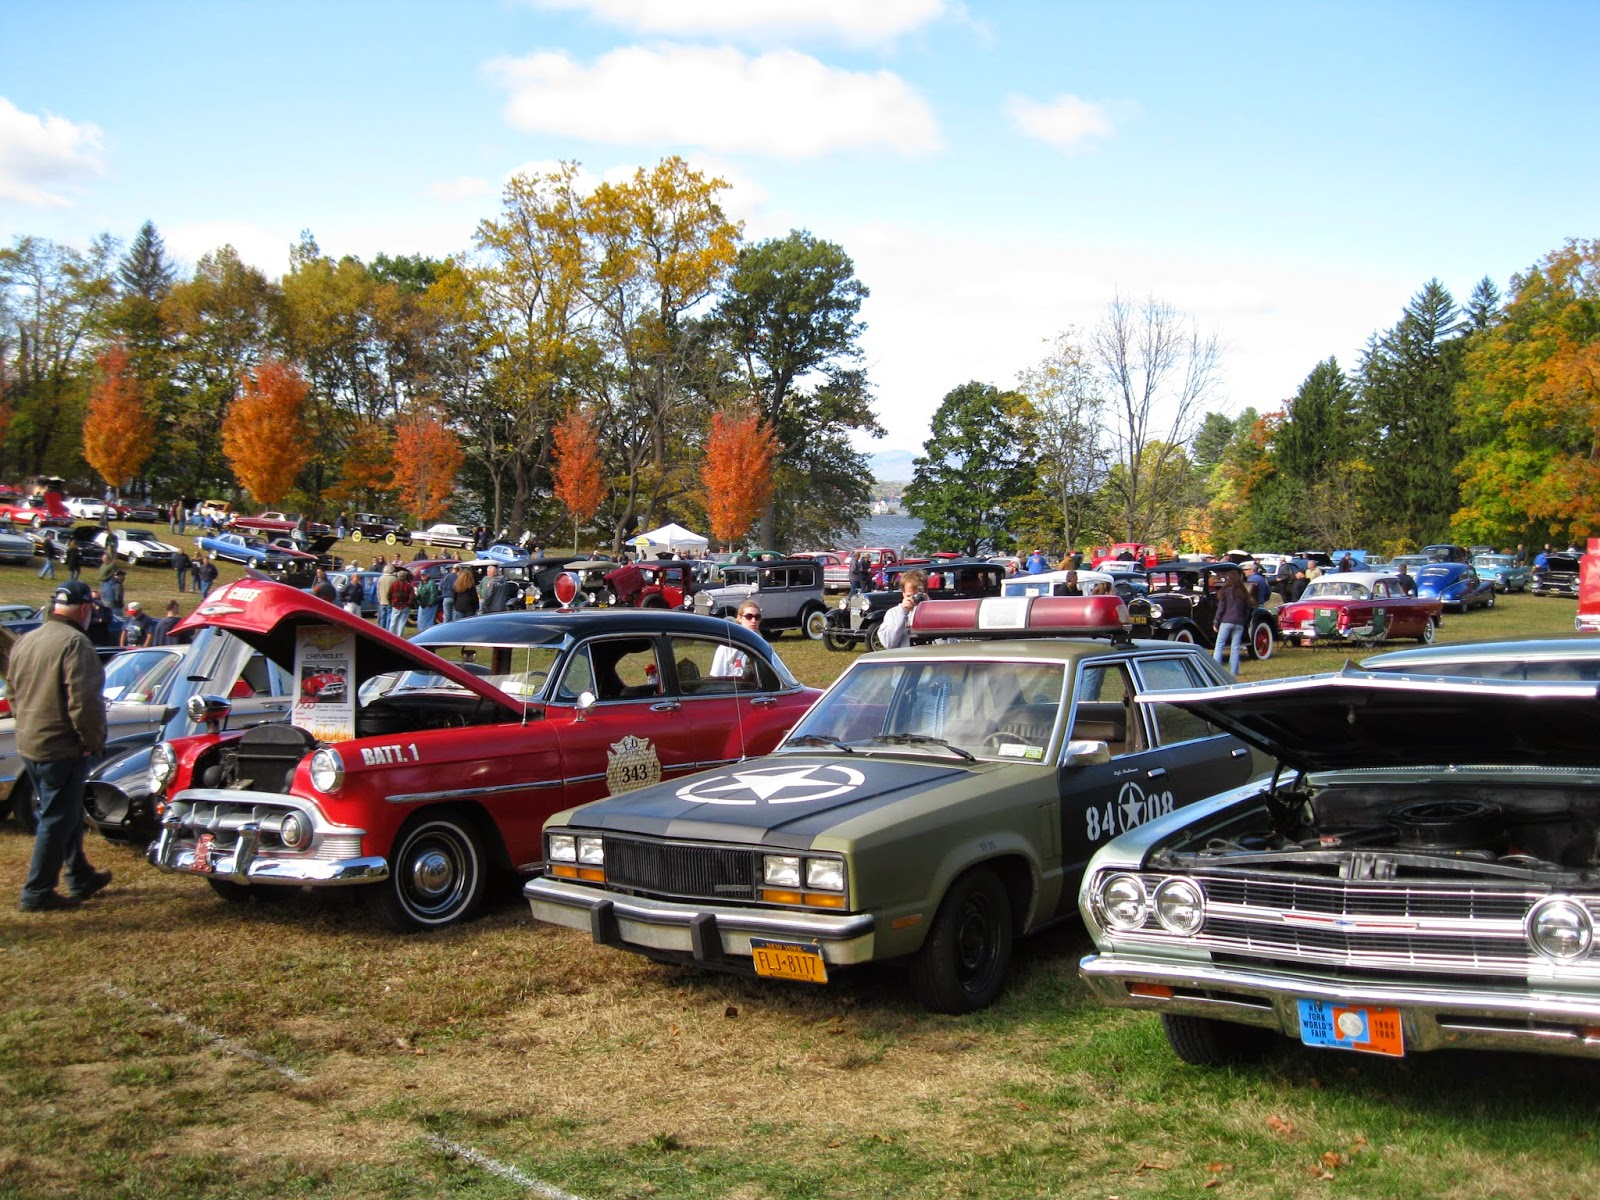 Staatsburgh State Historic Site: A Gathering of Old Cars 2014 Recap